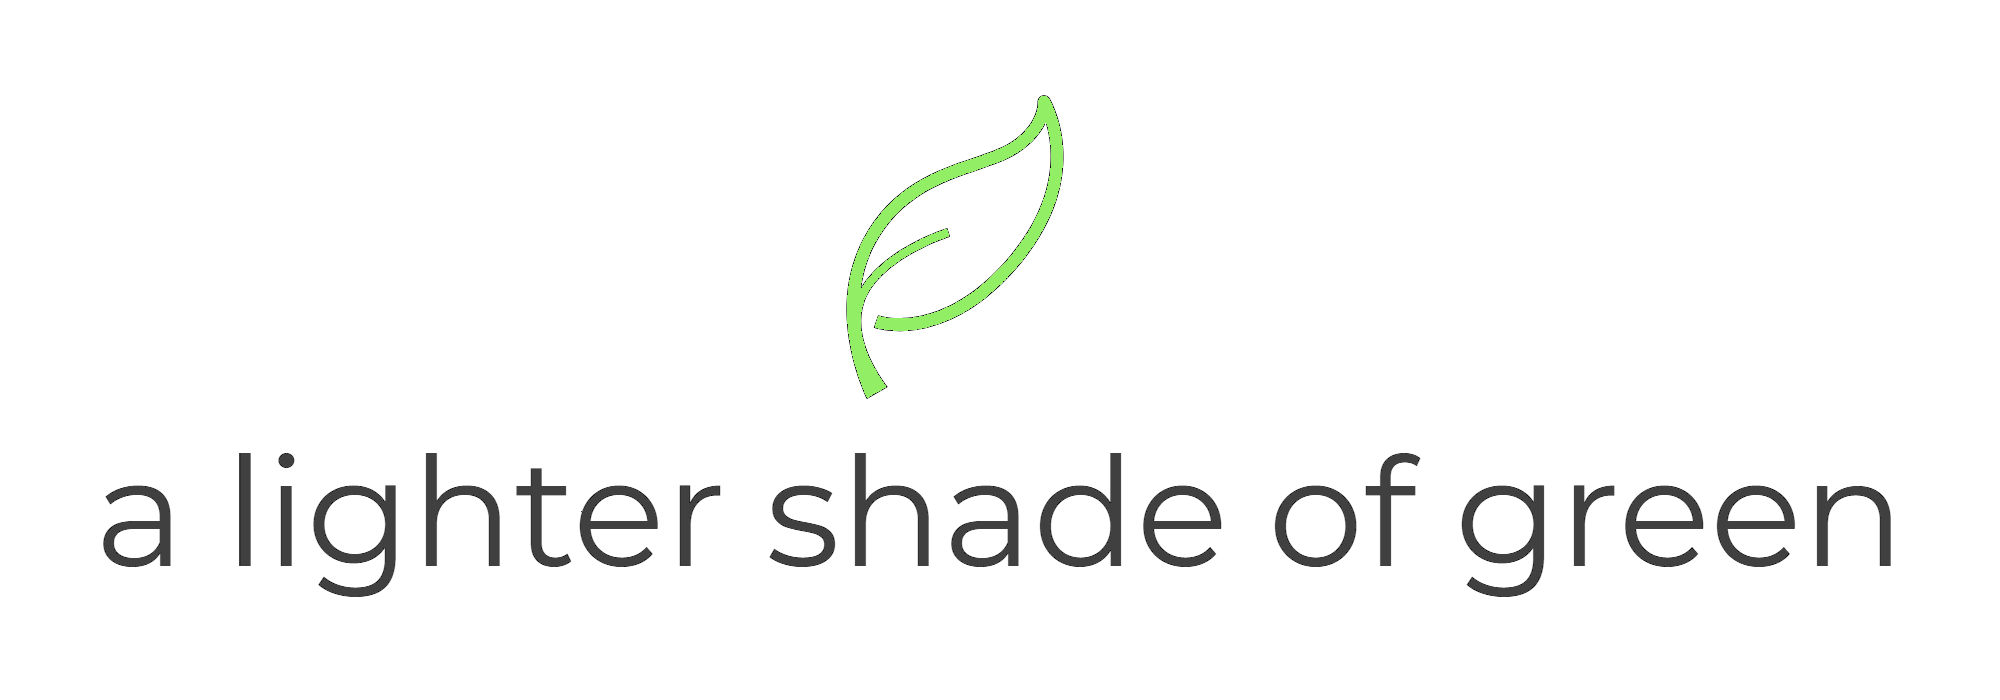 a lighter shade of green-logo (1) (3).png